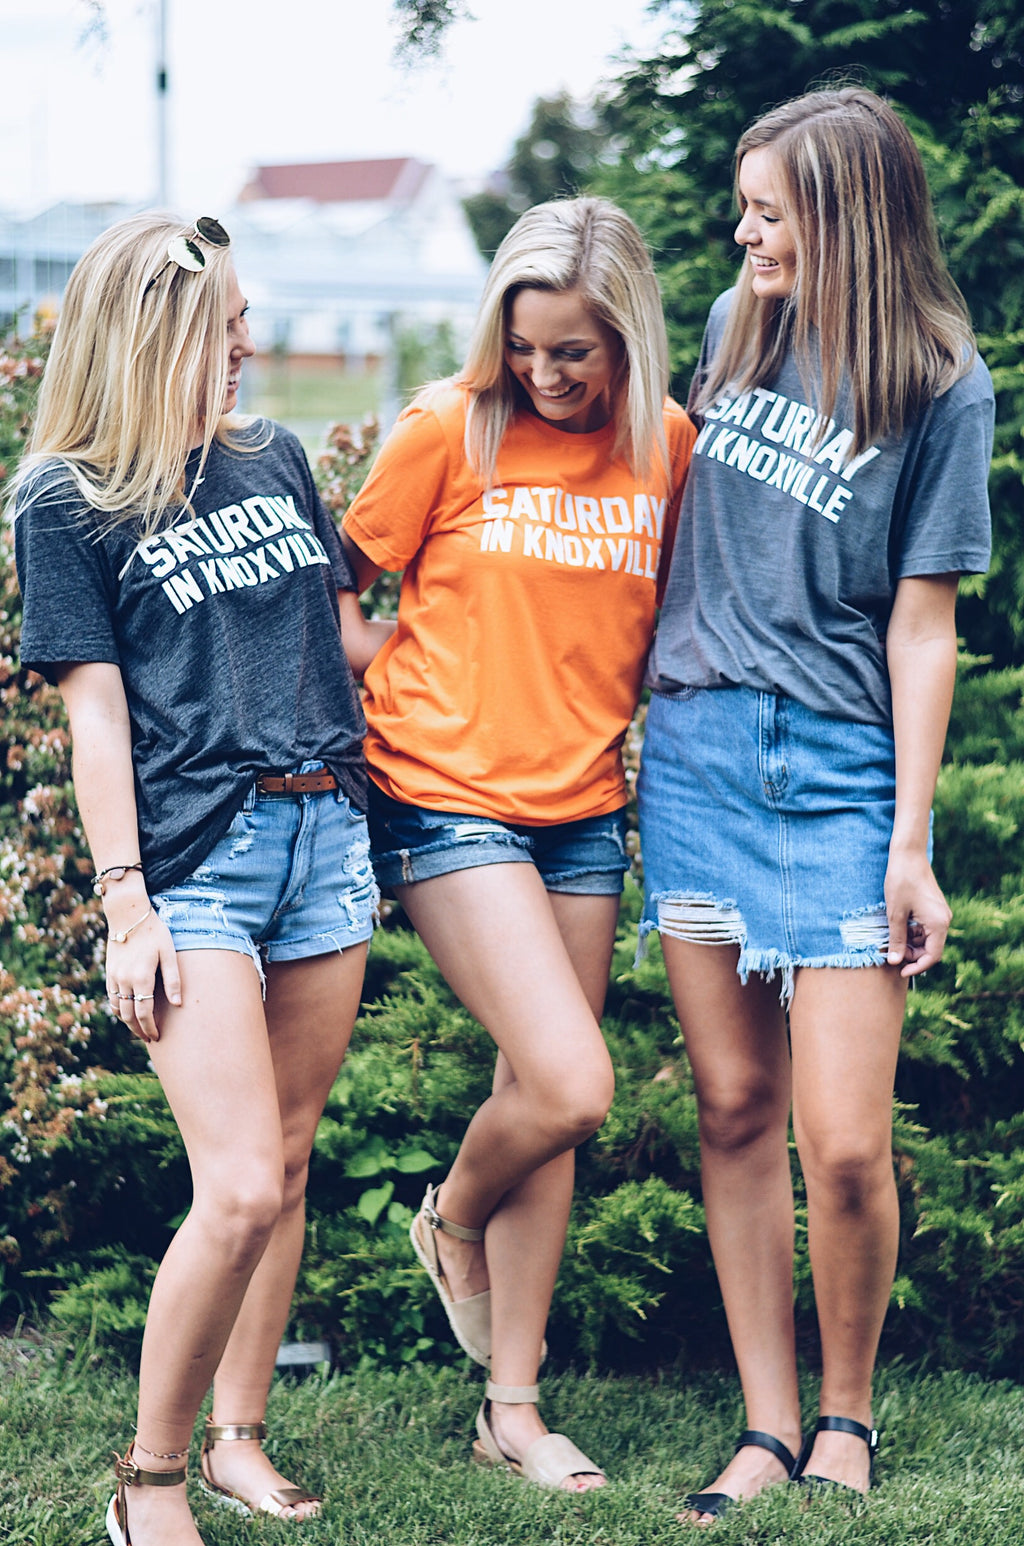 Saturday In Knoxville T-Shirt, Heather Gray